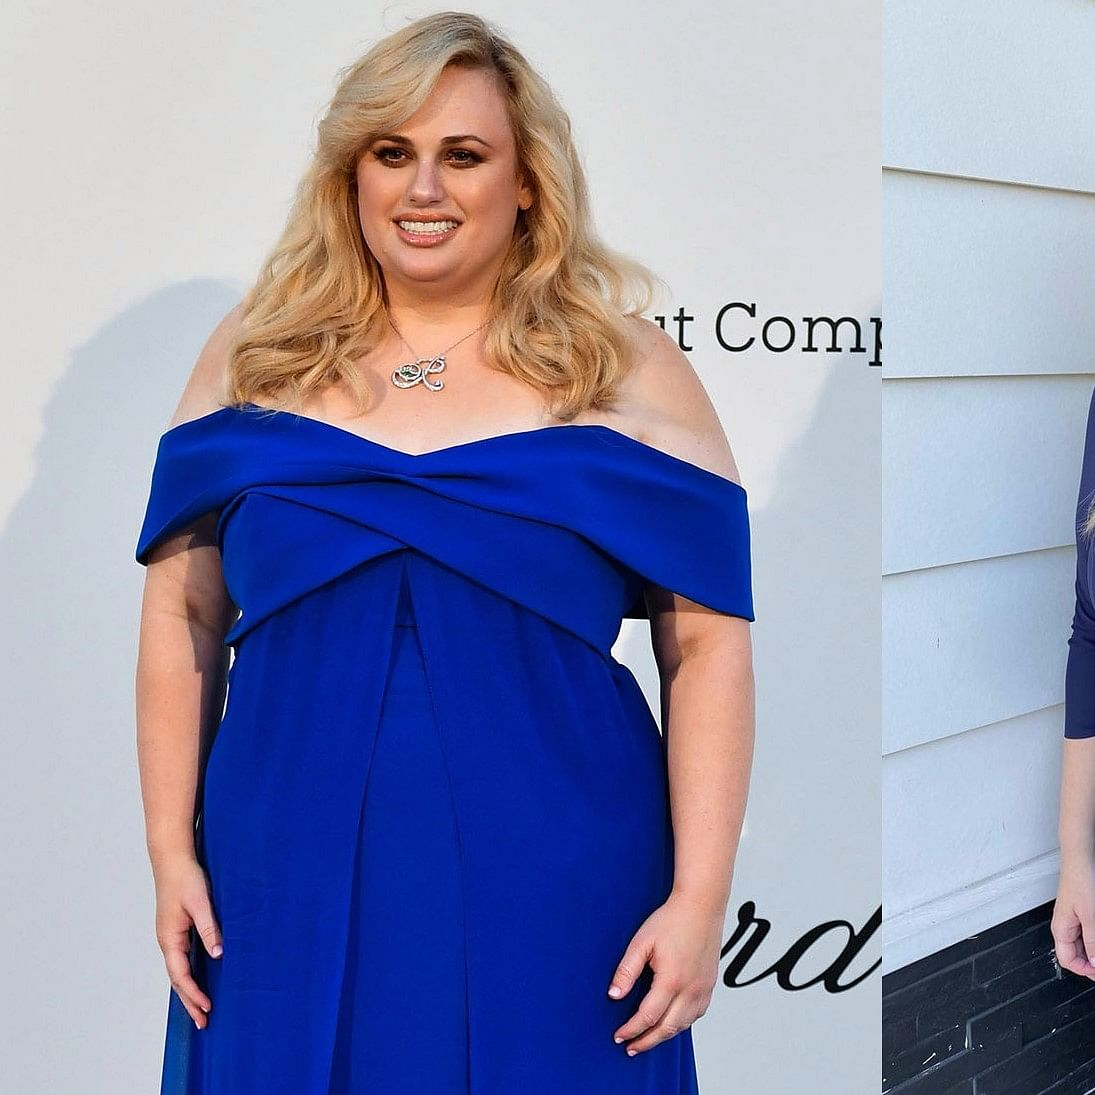 'People offer to carry my groceries': Rebel Wilson on being treated differently since weight loss